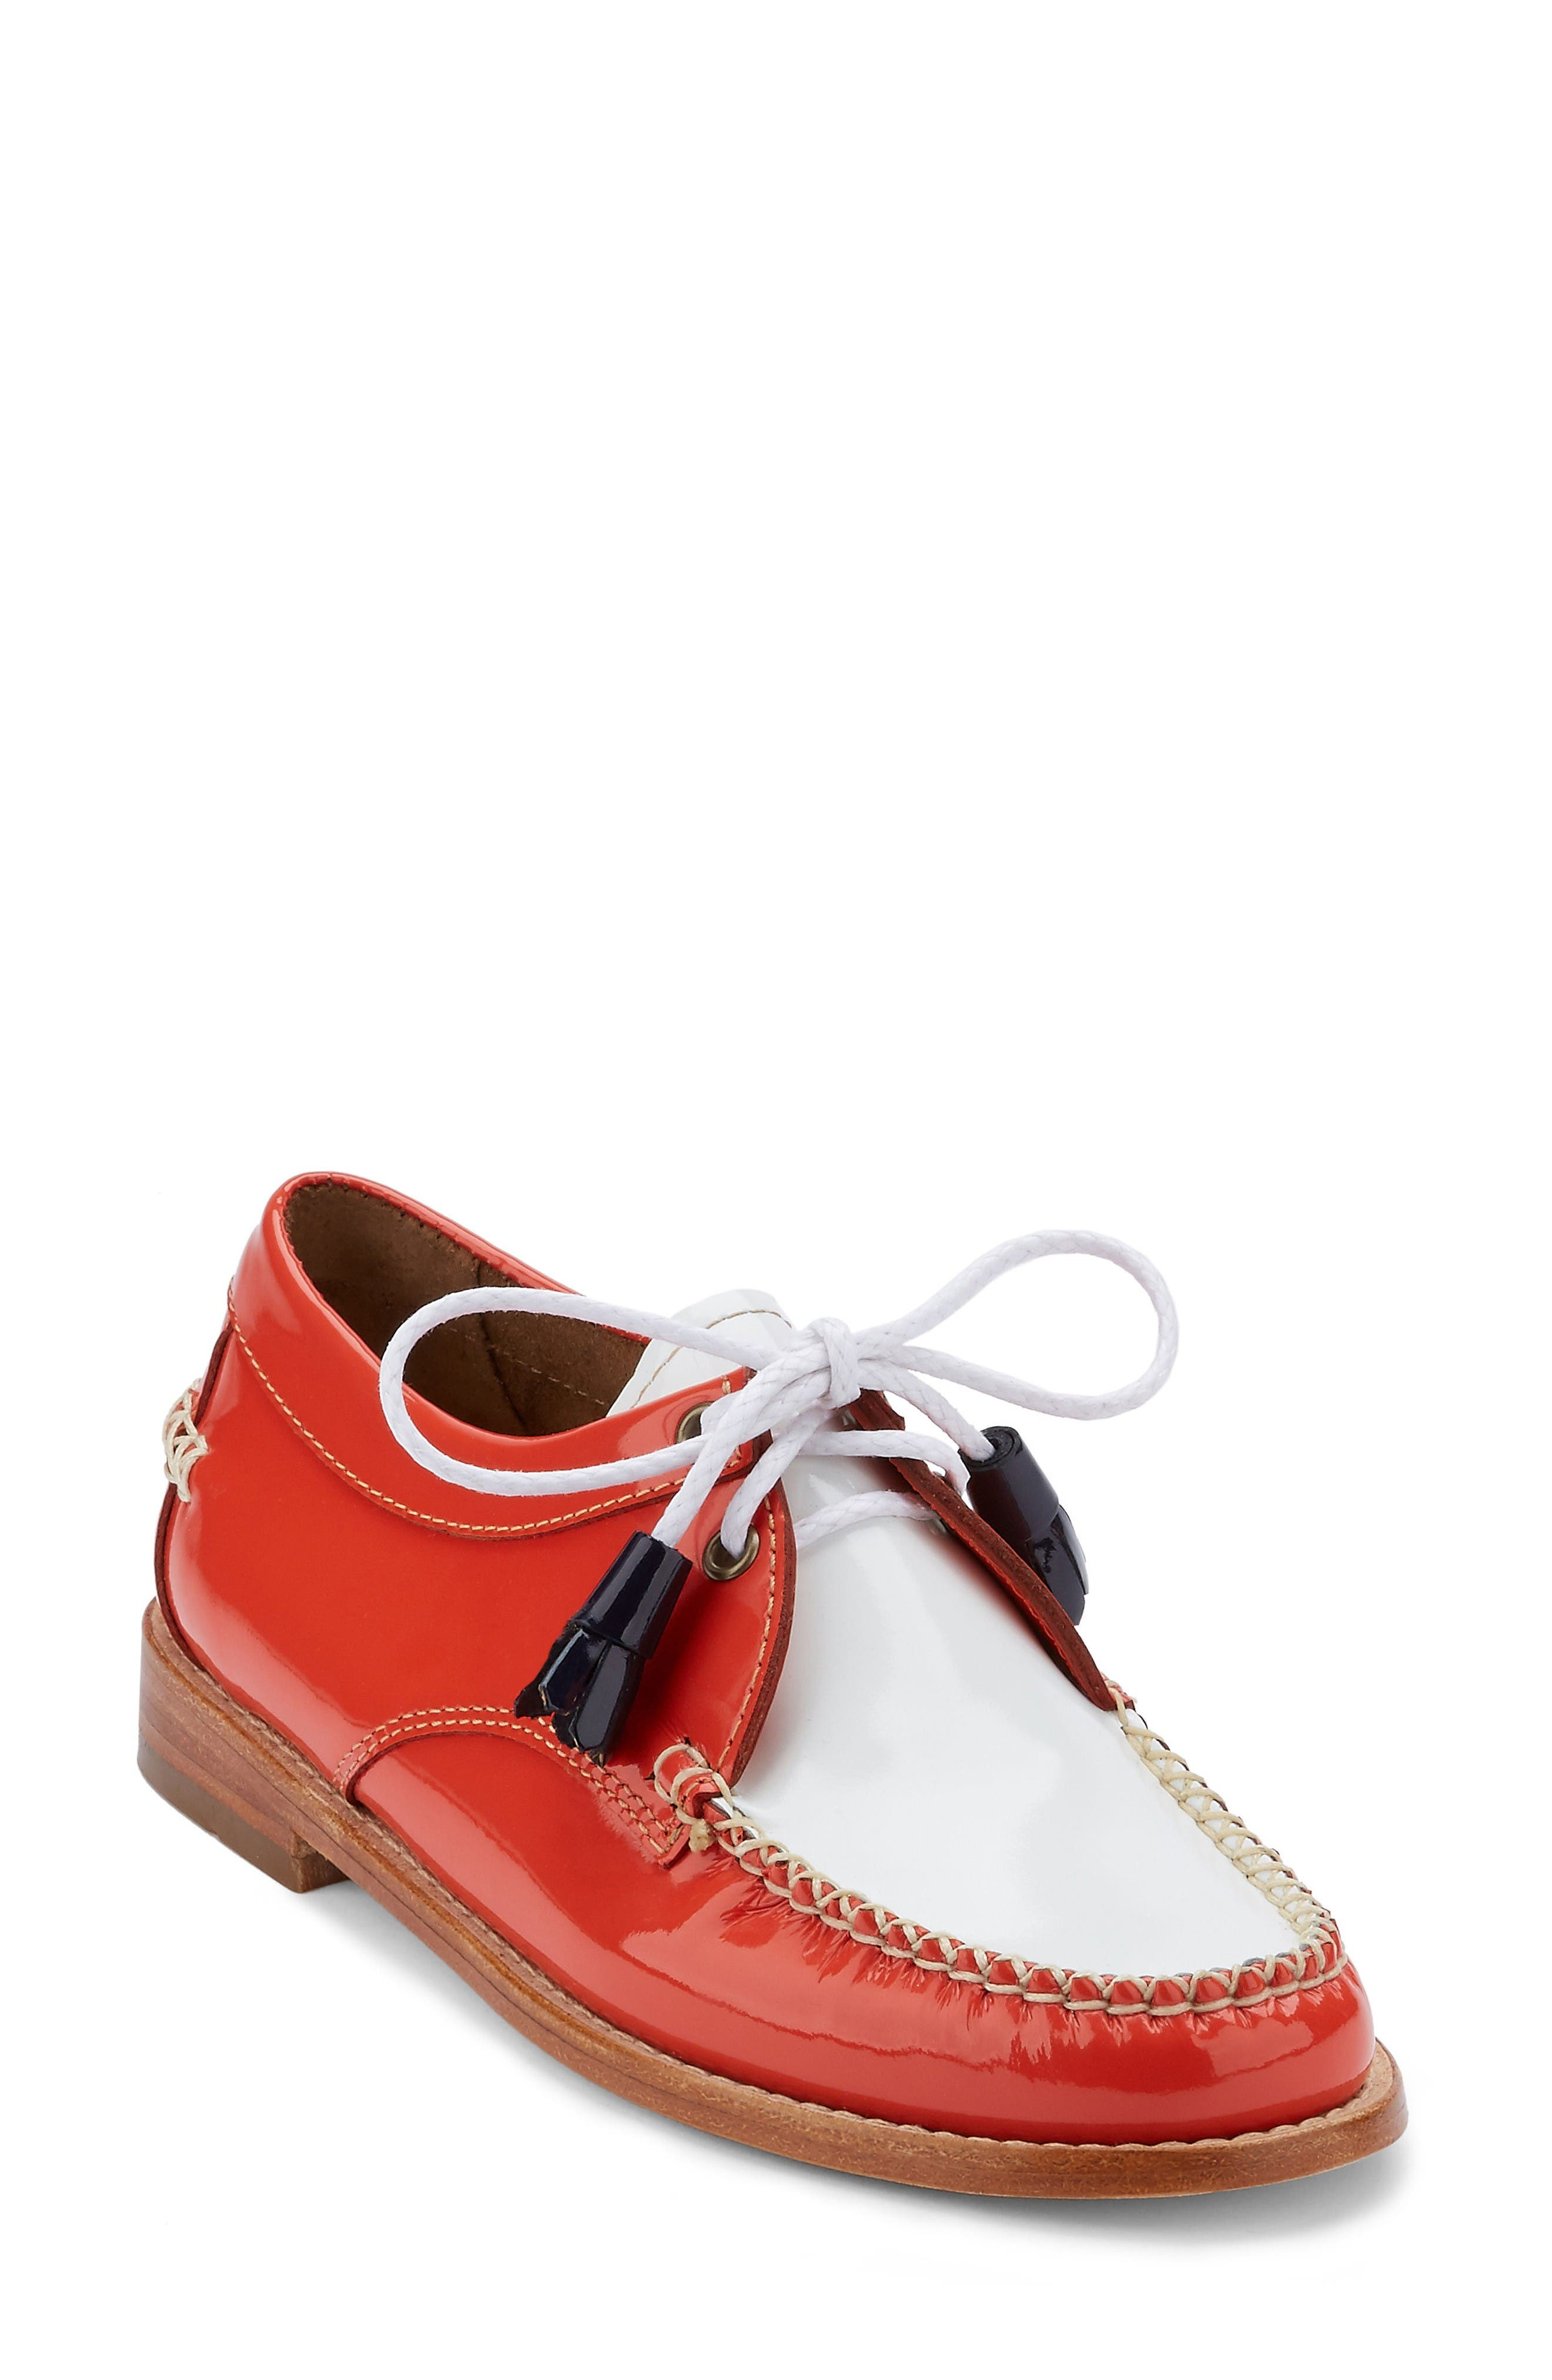 Alternate Image 1 Selected - G.H. Bass & Co. 'Winnie' Leather Oxford (Women)